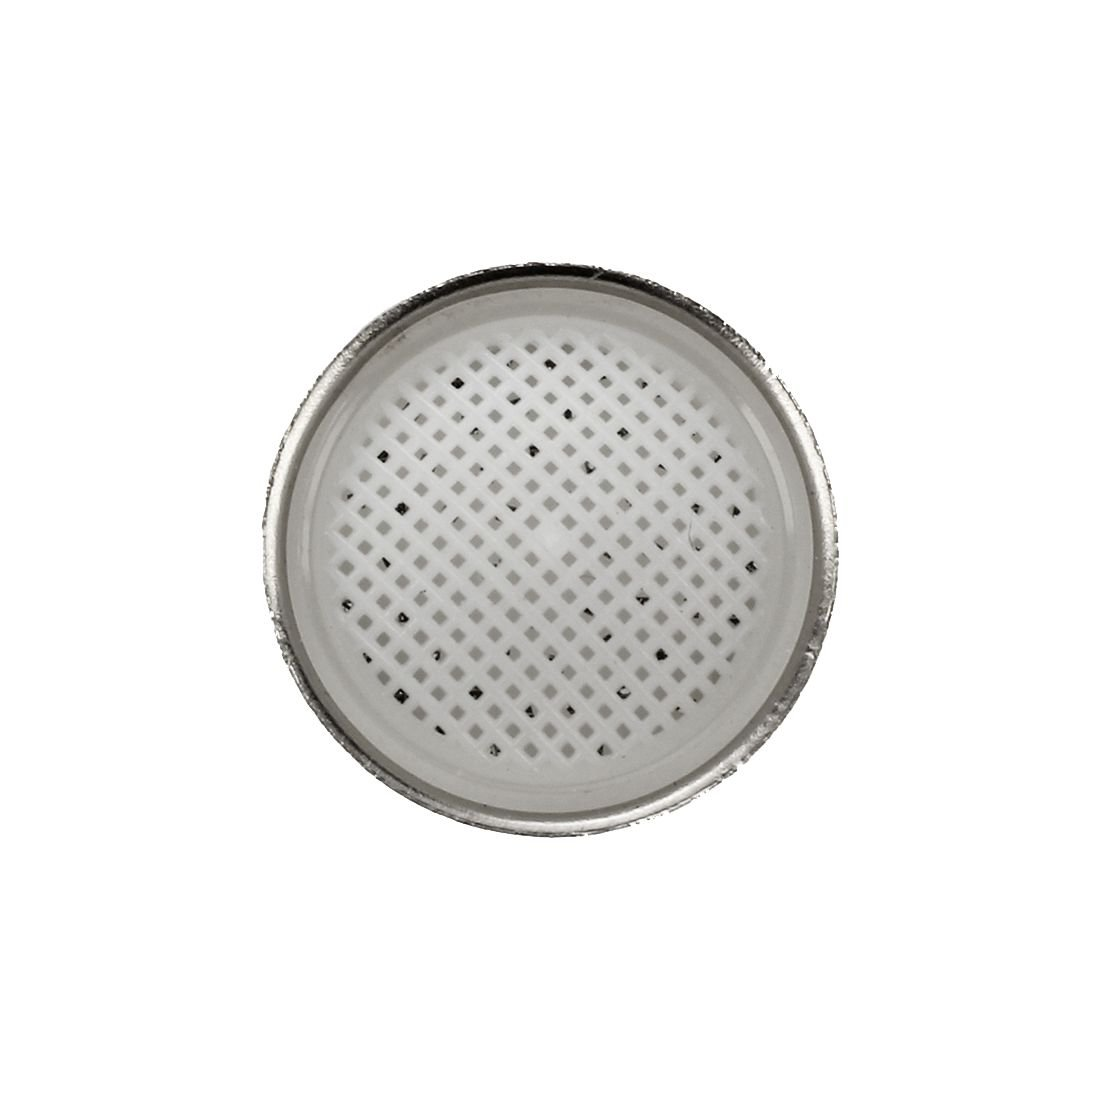 SODIAL(R) Kitchen/Bathroom Faucet Sprayer Strainer Tap Filter---White and Silver by SODIAL(R) (Image #4)